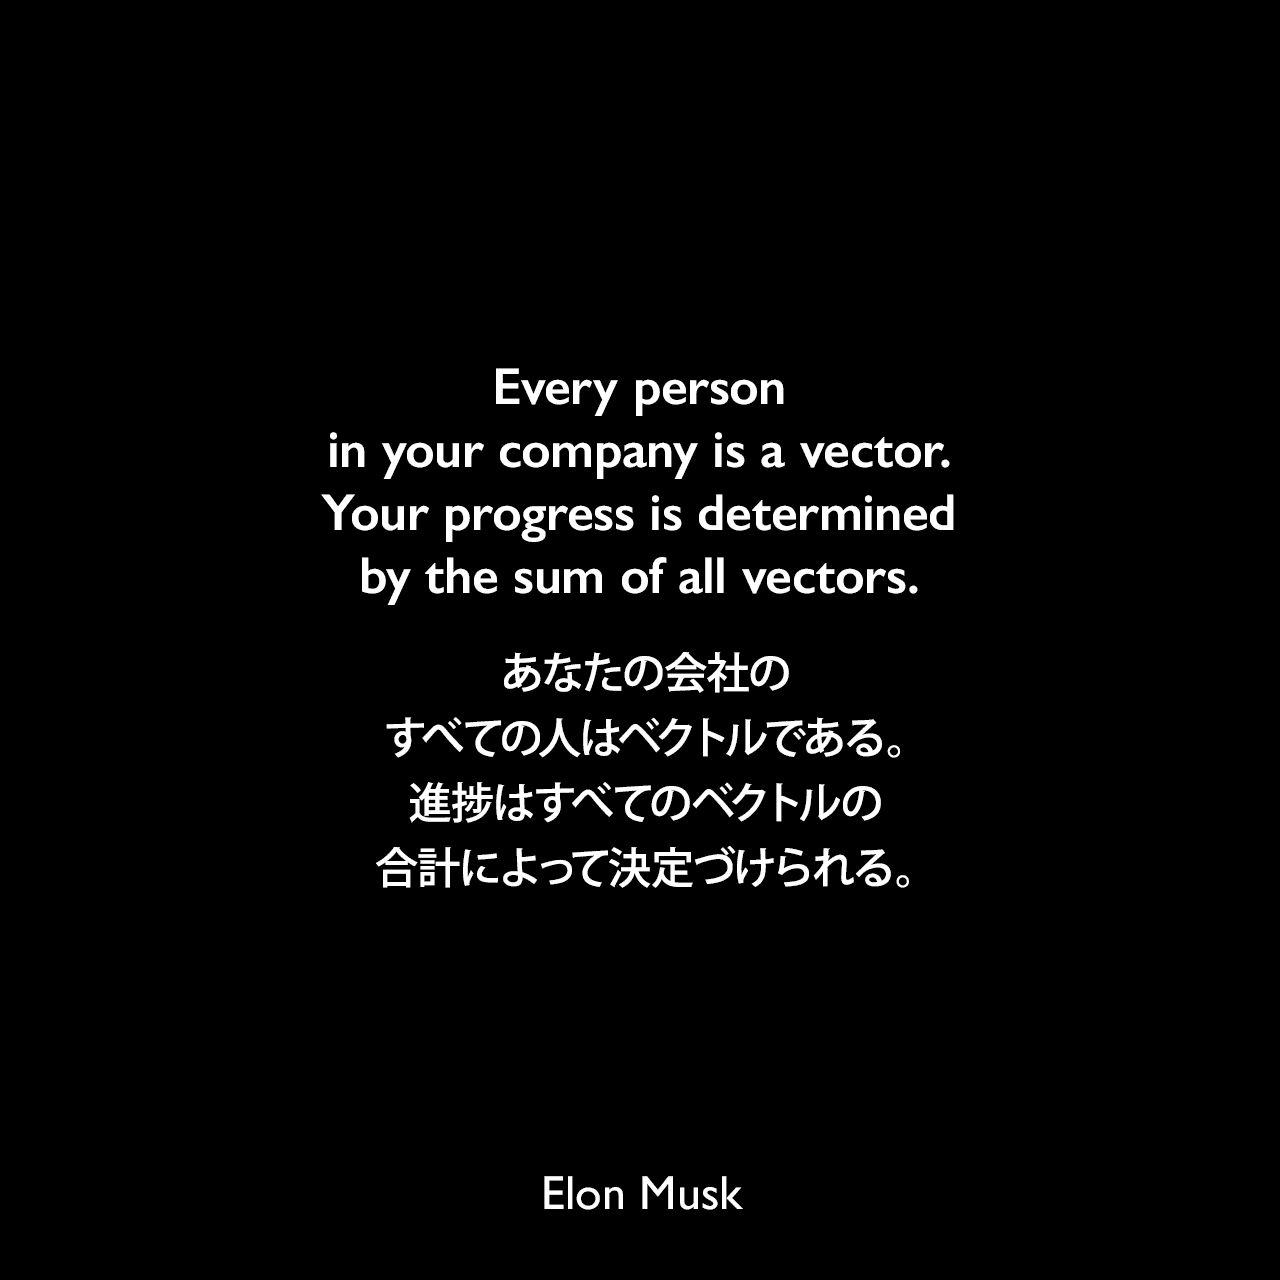 Every person in your company is a vector. Your progress is determined by the sum of all vectors.あなたの会社のすべての人はベクトルである。進捗はすべてのベクトルの合計によって決定づけられる。- 2017年10月 ダーメッシュ・シャーの記事「What Elon Musk Taught Me About Growing A Business」よりElon Musk